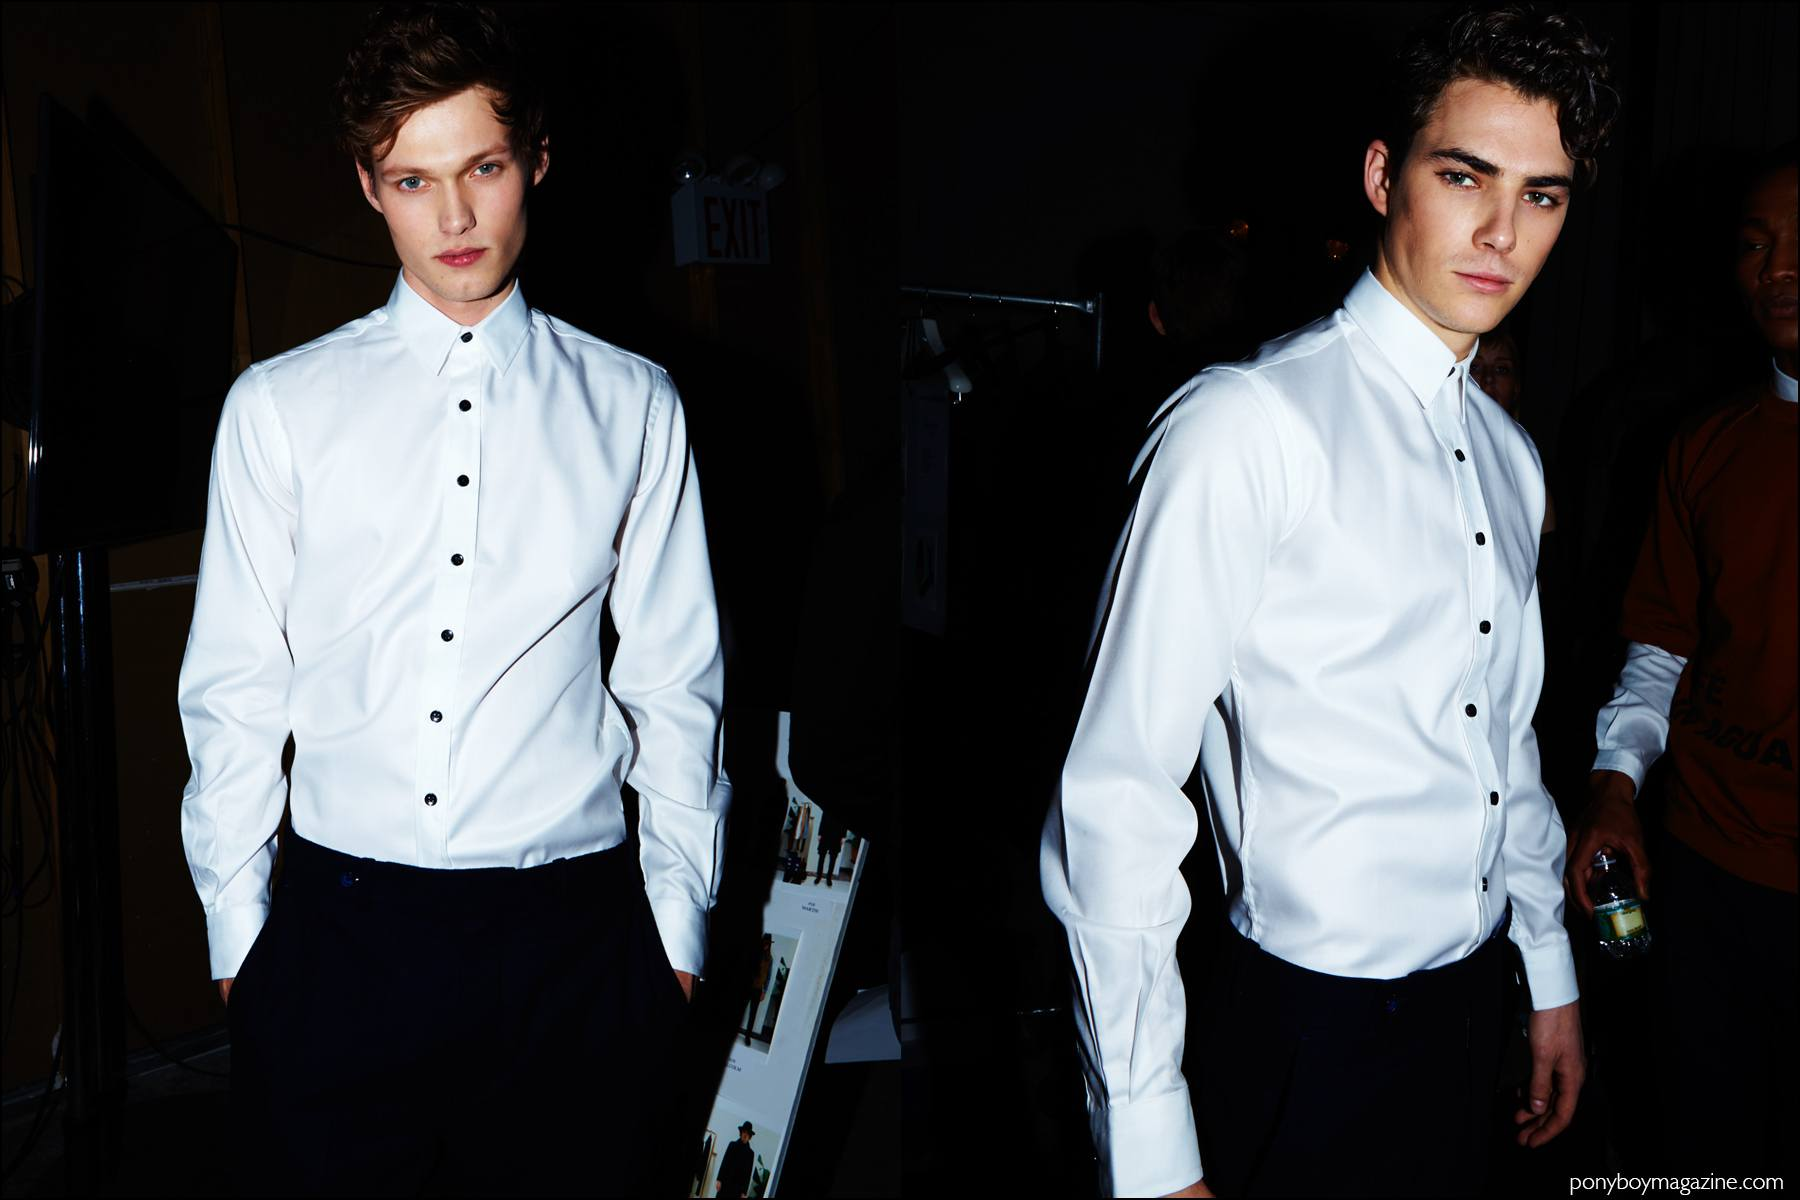 The classic white shirt, as done by designer Carlos Campos, for Fall/Winter 2016. Photography by Alexander Thompson for Ponyboy magazine NY.